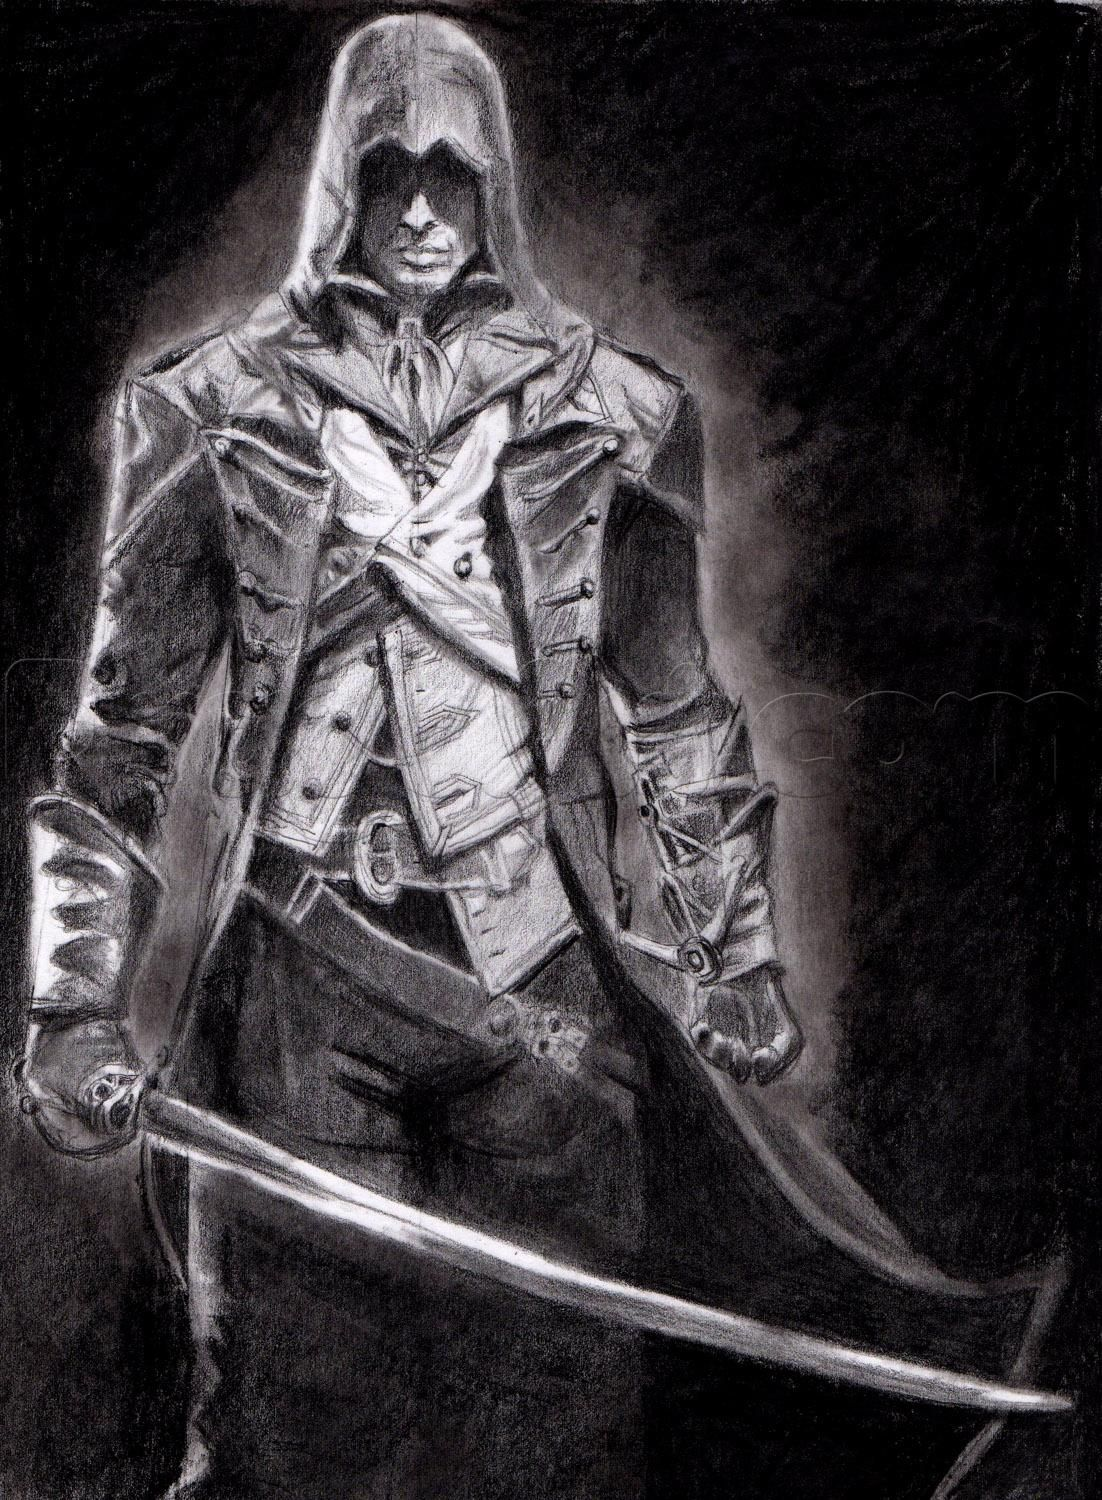 Assassins creed games free online - How To Draw Arno Victor Dorian From Assassins Creed Unity Step 23